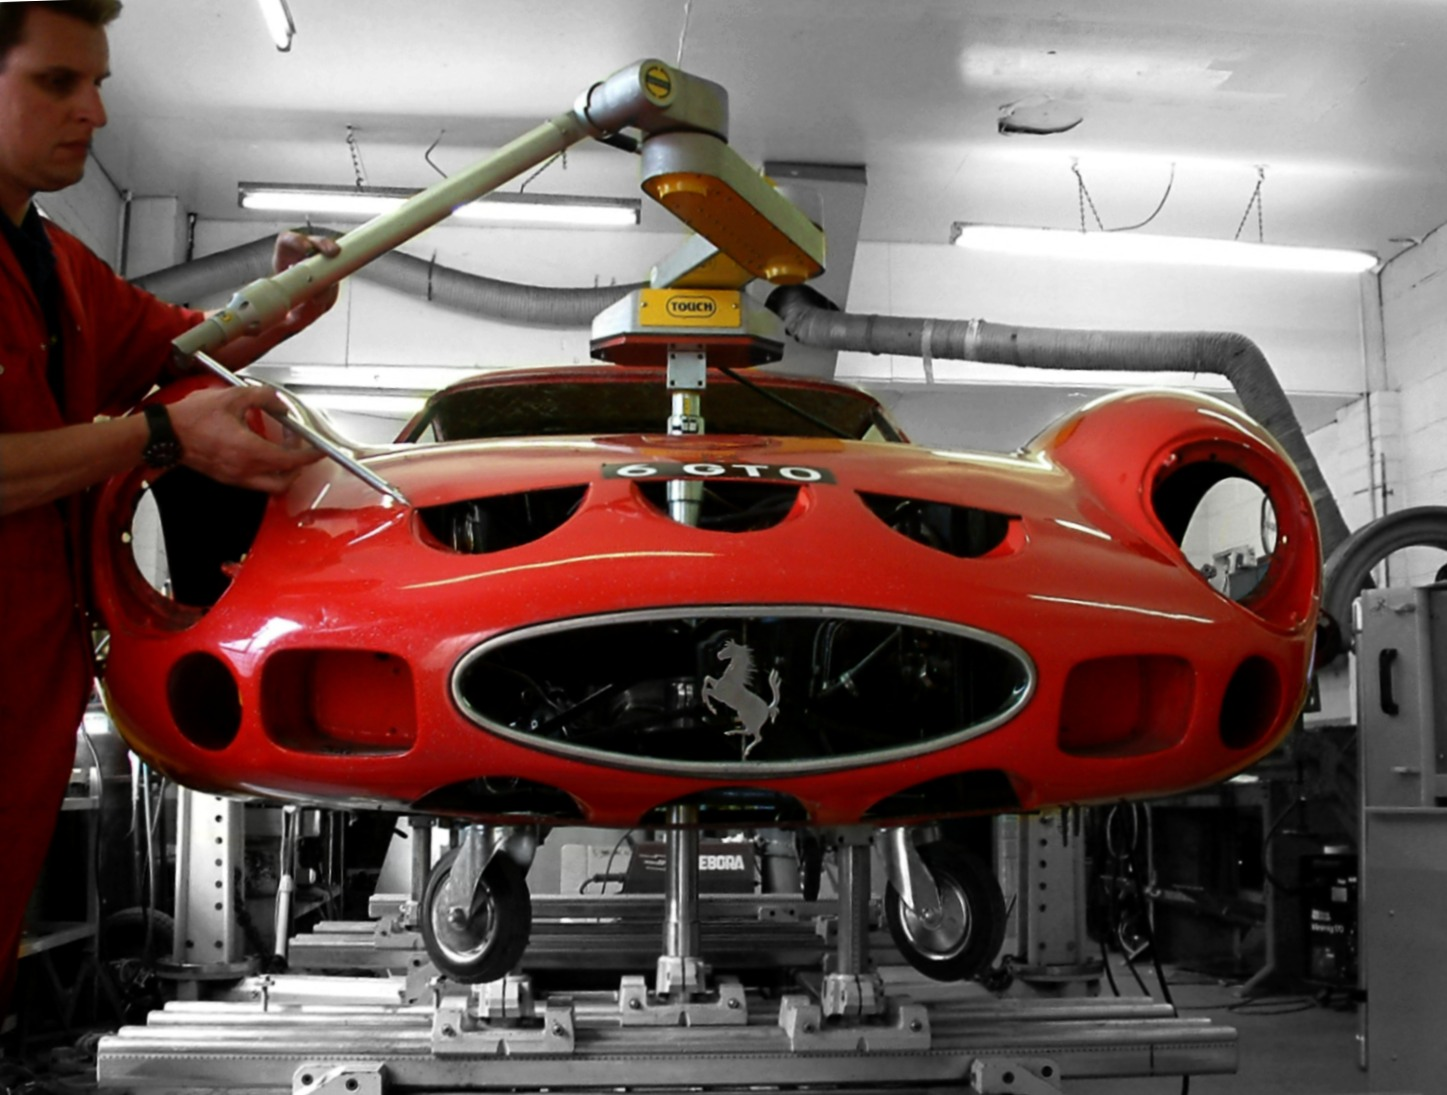 Ferrari 250 GTO being checked before commencement of a total restoration. This car arrived and left in perfect alignment.